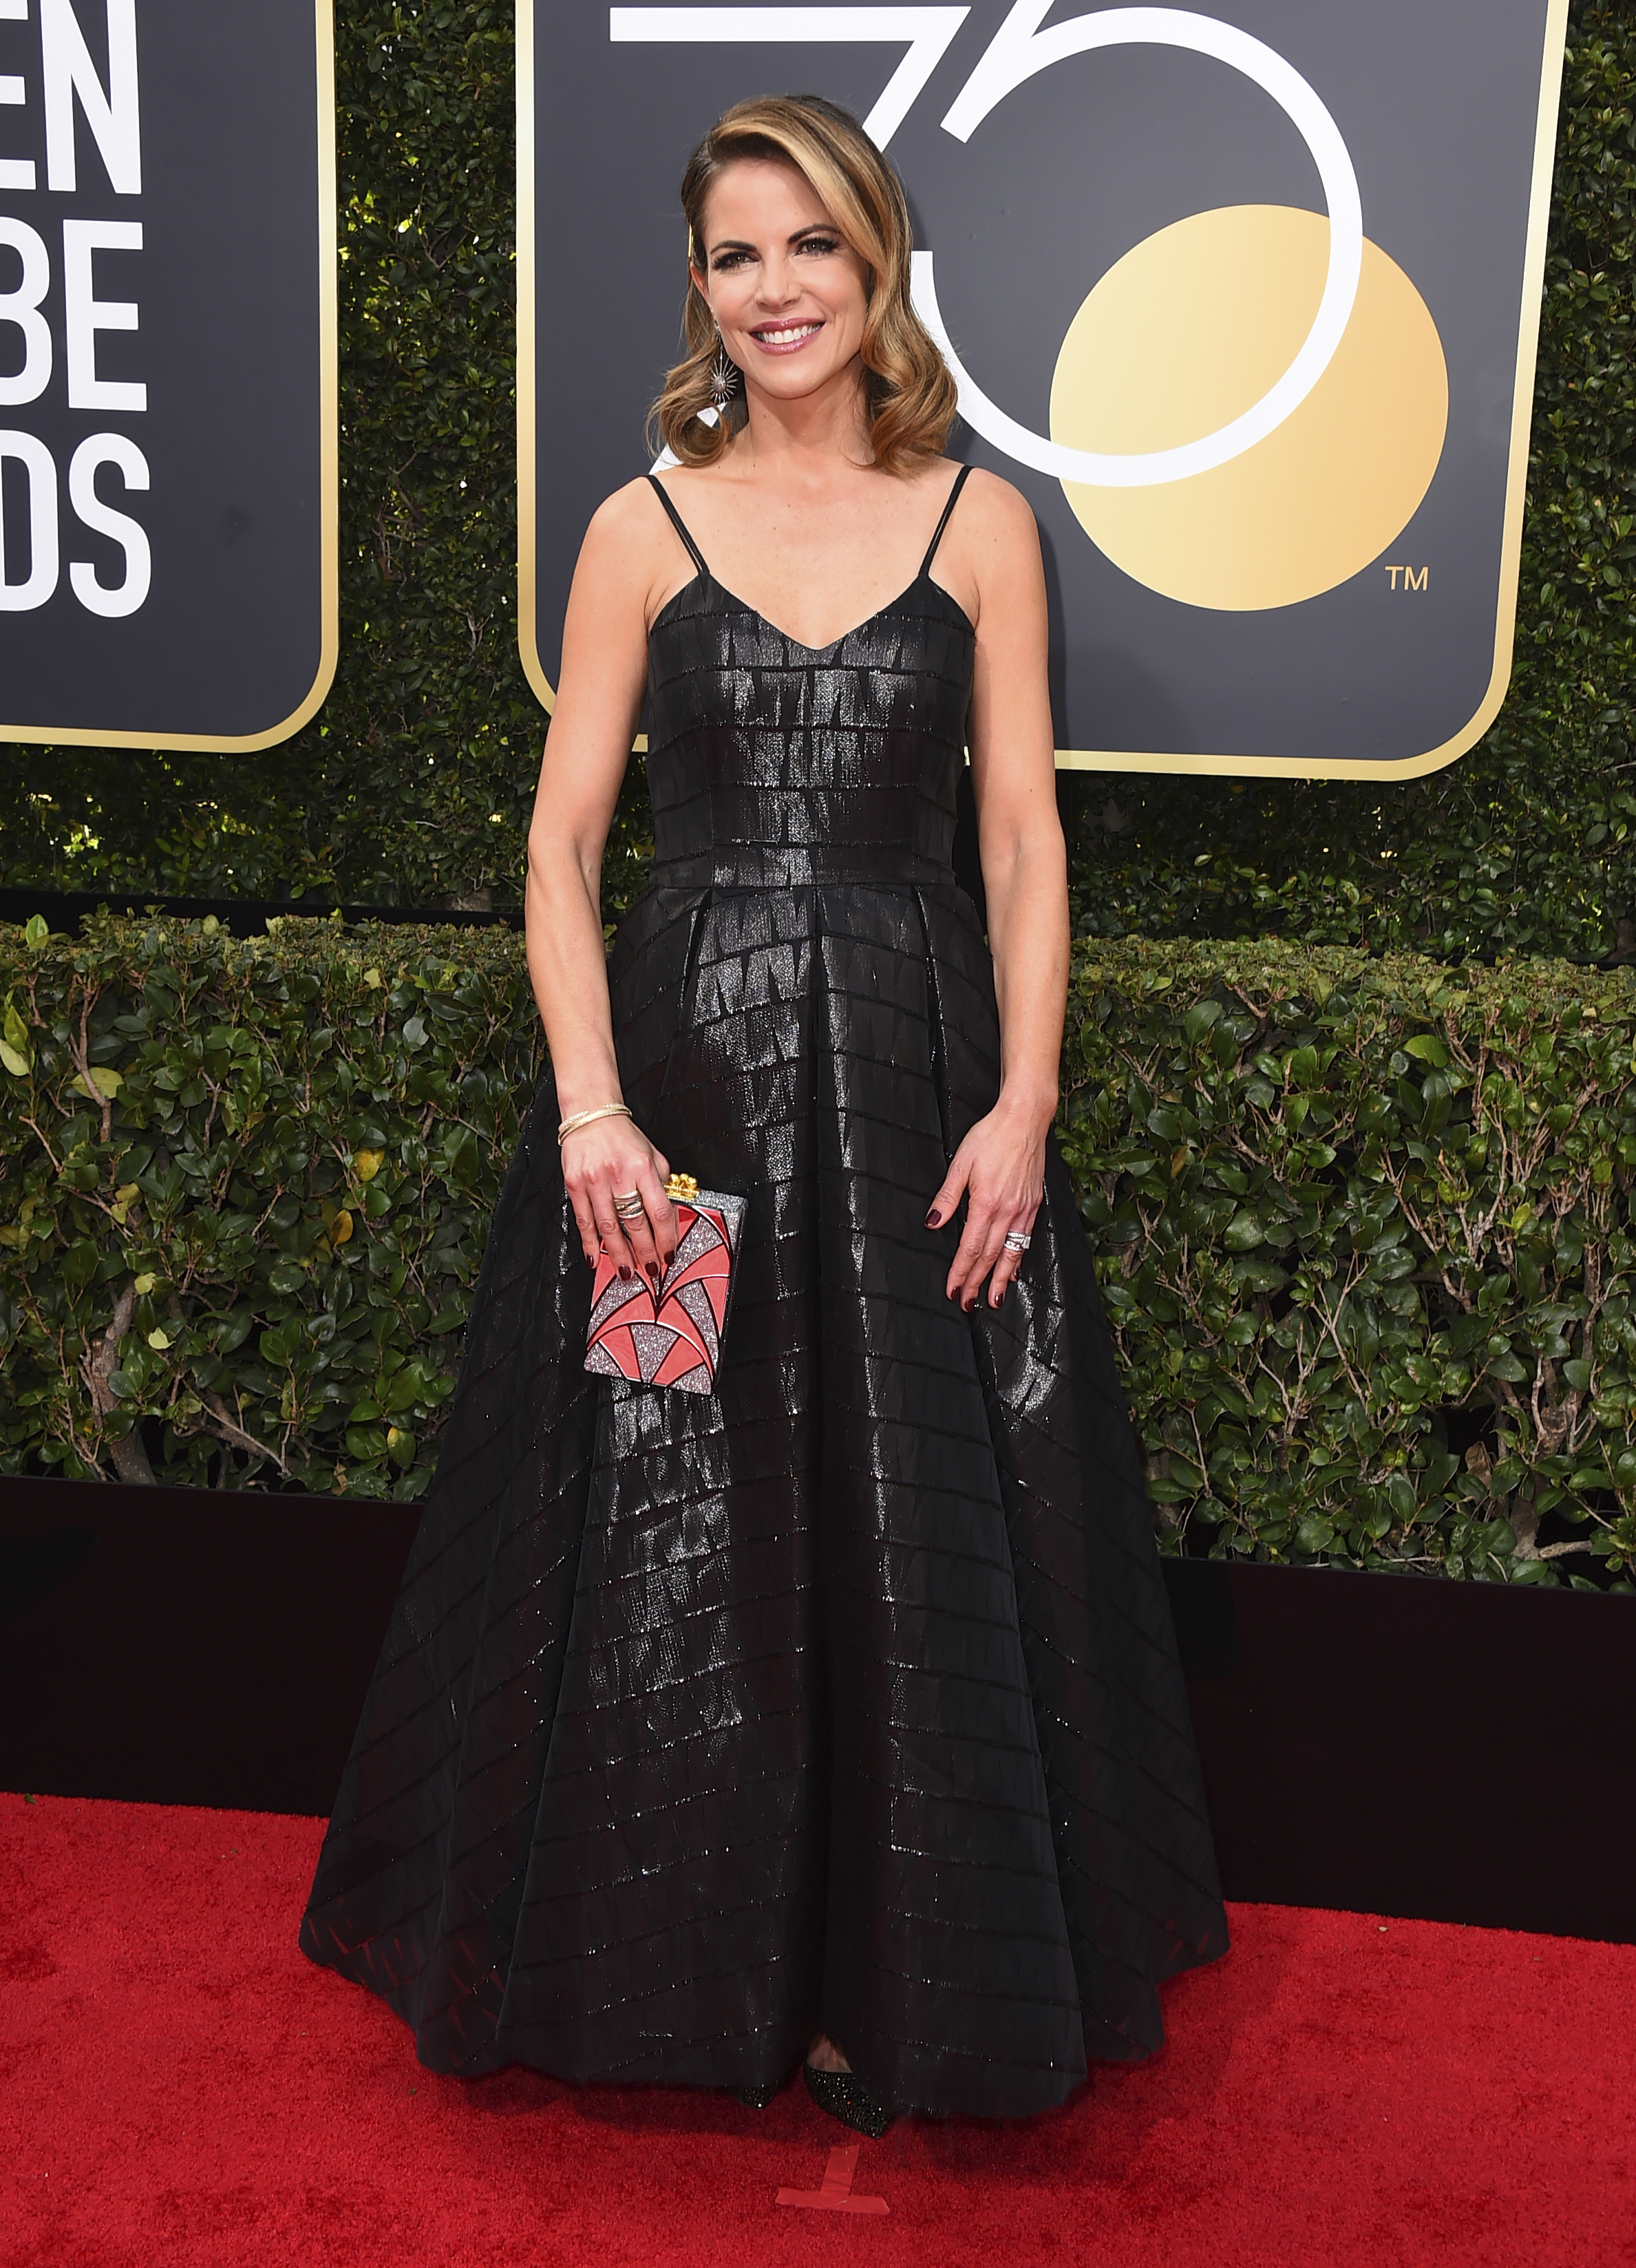 <div class='meta'><div class='origin-logo' data-origin='AP'></div><span class='caption-text' data-credit='Jordan Strauss/Invision/AP'>Natalie Morales arrives at the 75th annual Golden Globe Awards at the Beverly Hilton Hotel on Sunday, Jan. 7, 2018, in Beverly Hills, Calif.</span></div>